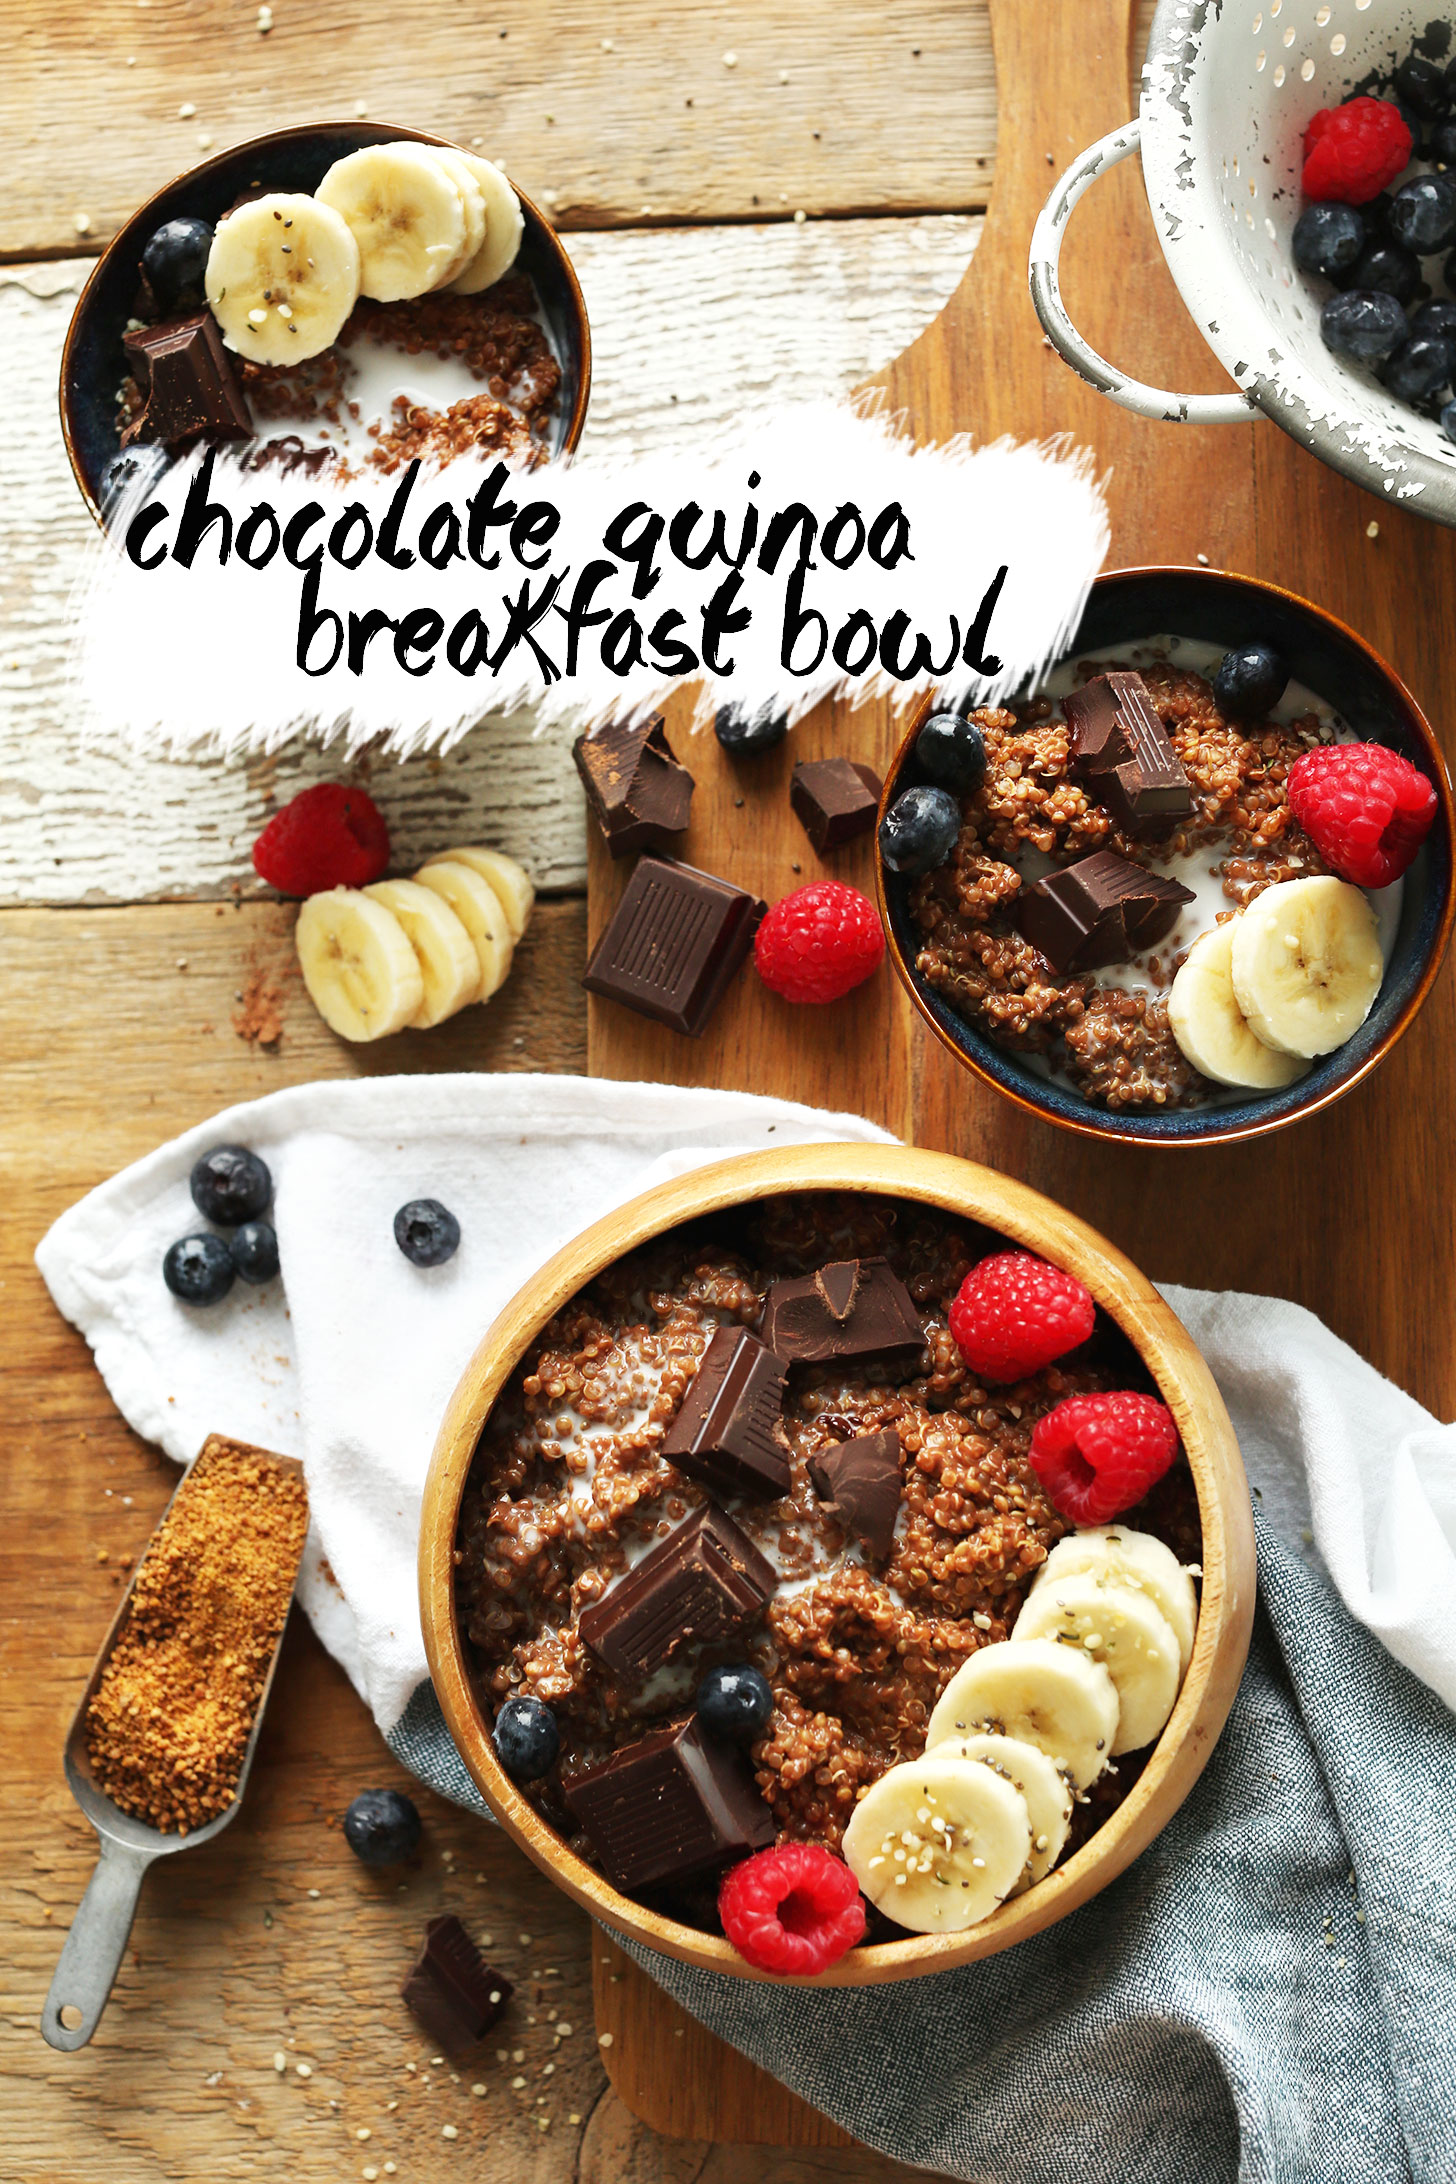 Breakfast bowls filled with our gluten-free vegan Chocolate Quinoa Breakfast Bowls recipe